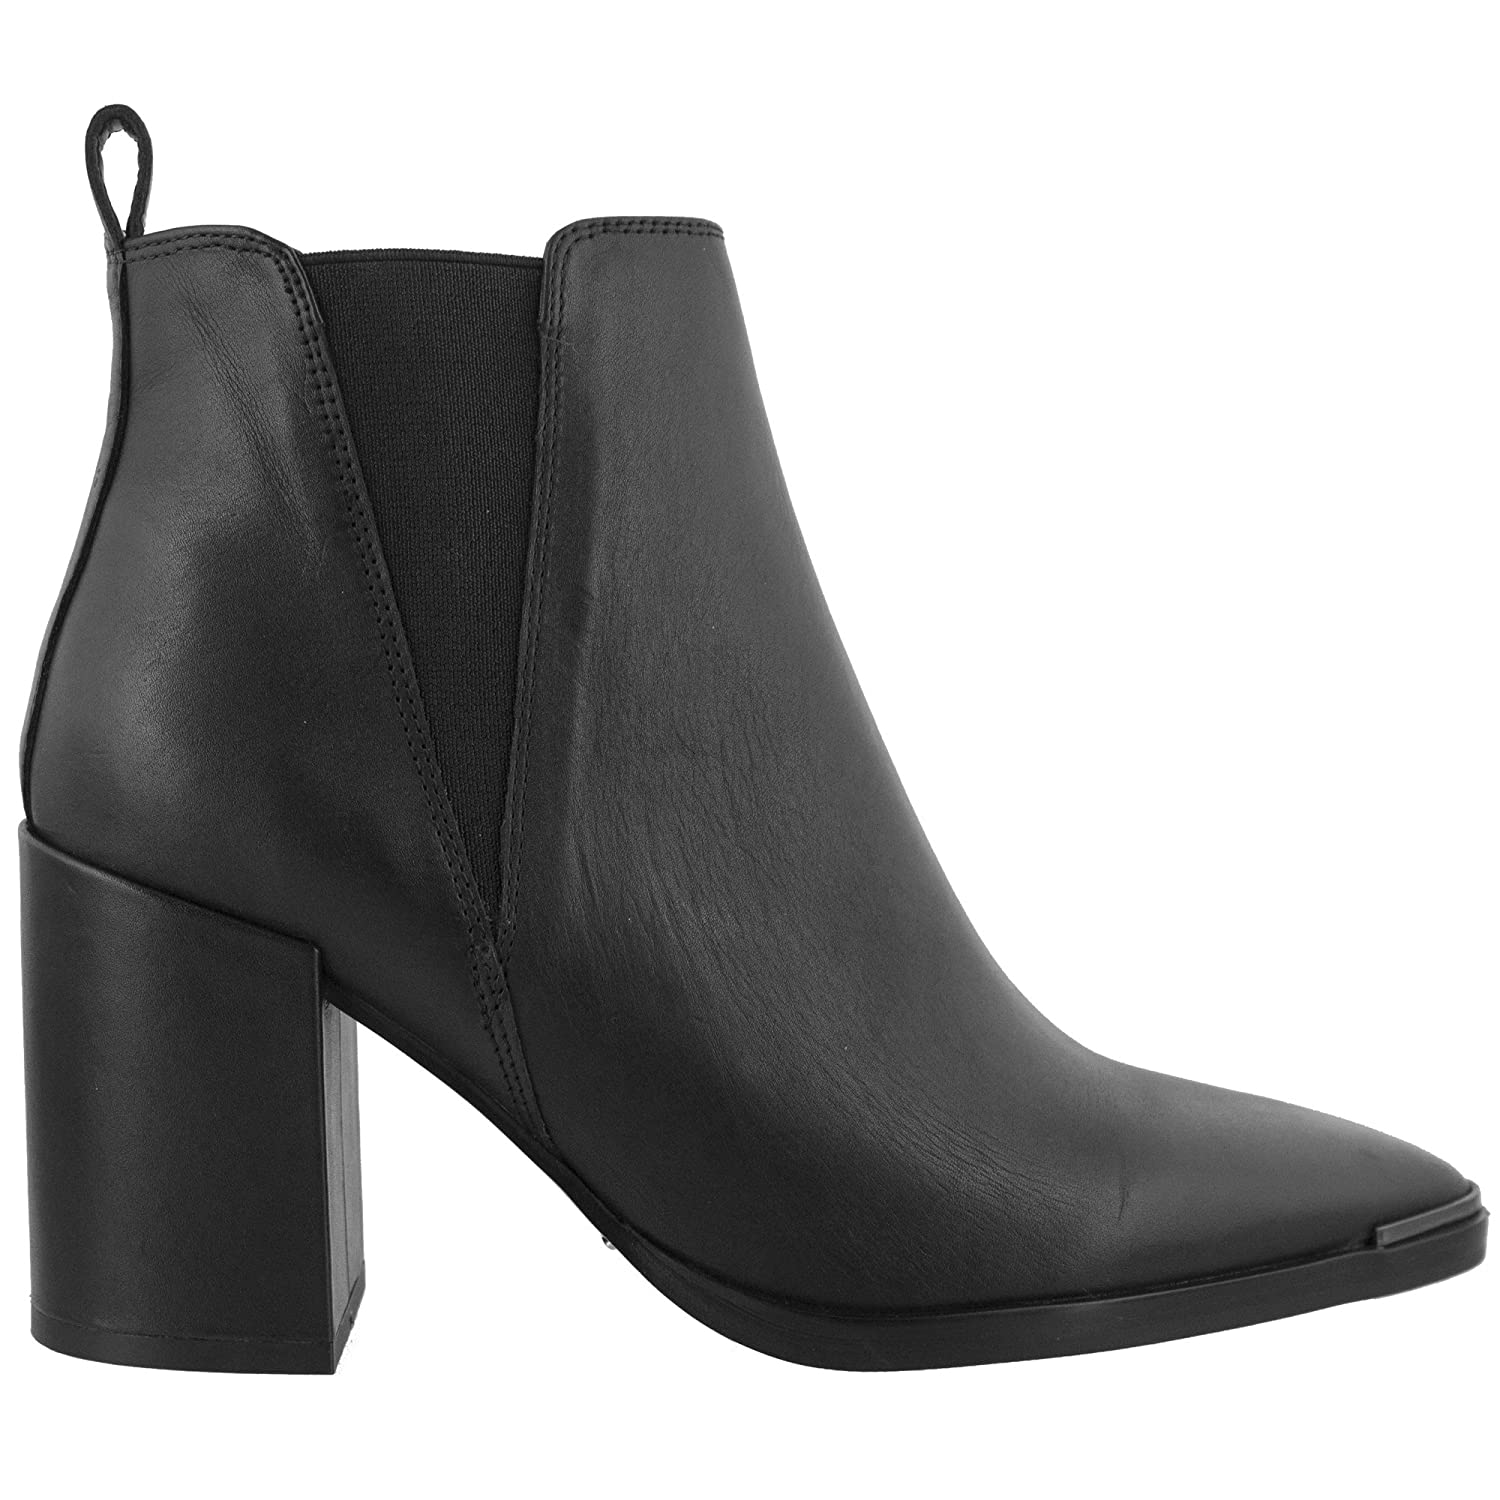 Tony Bianco Bello Womens Ankle Boots - with Covered Block Heel & Side Triangular Gussets B076956QSD 8 B(M) US|Black Jetta Polish